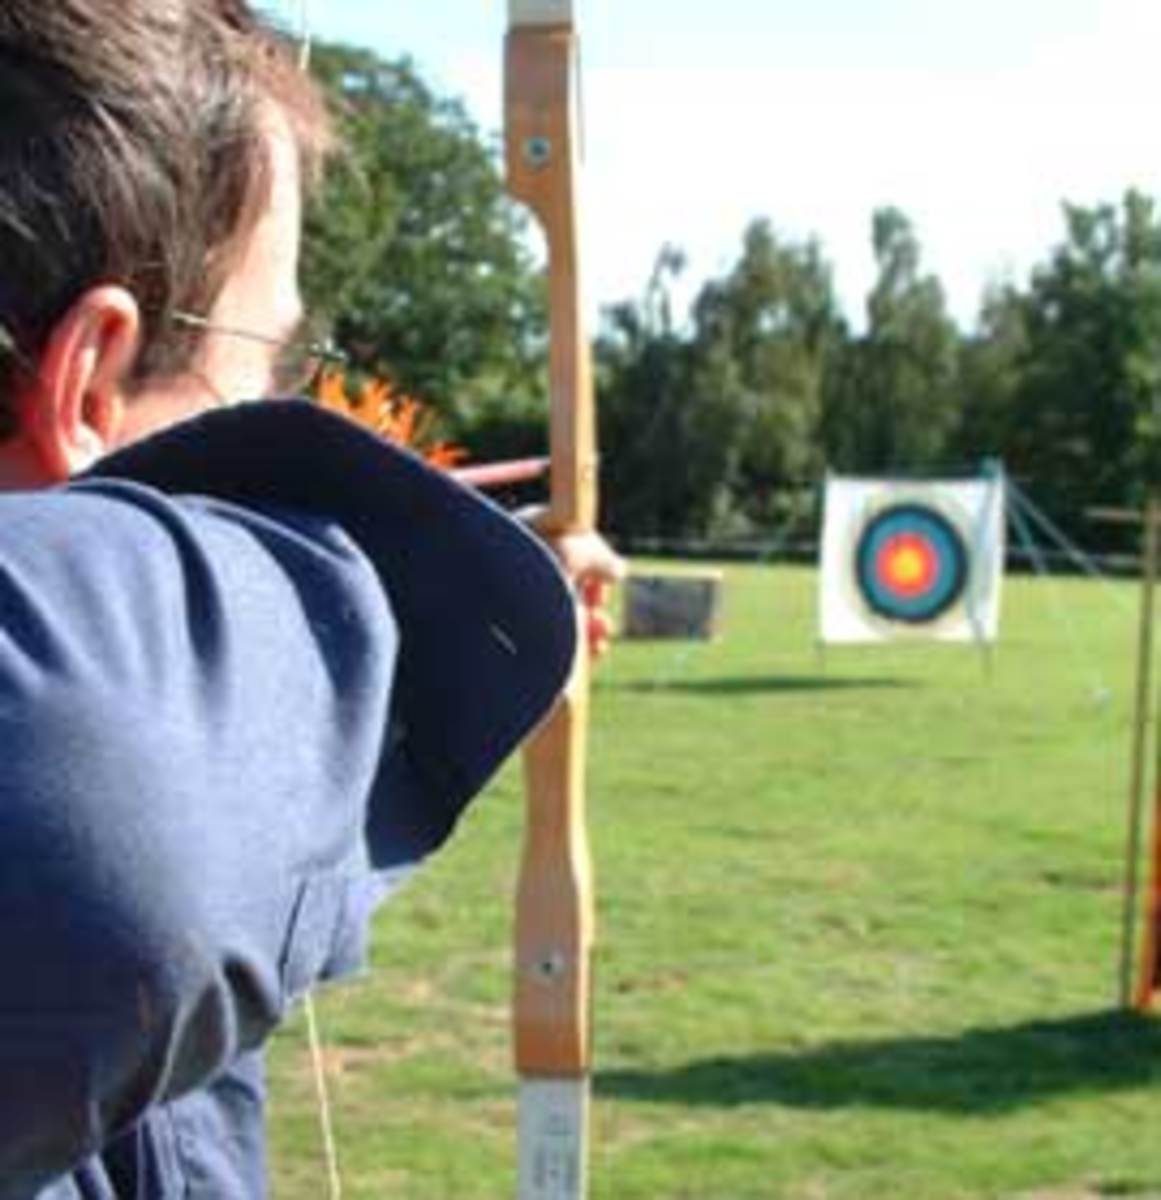 Traditional Archery : A Wonderful Form of Modern Meditation